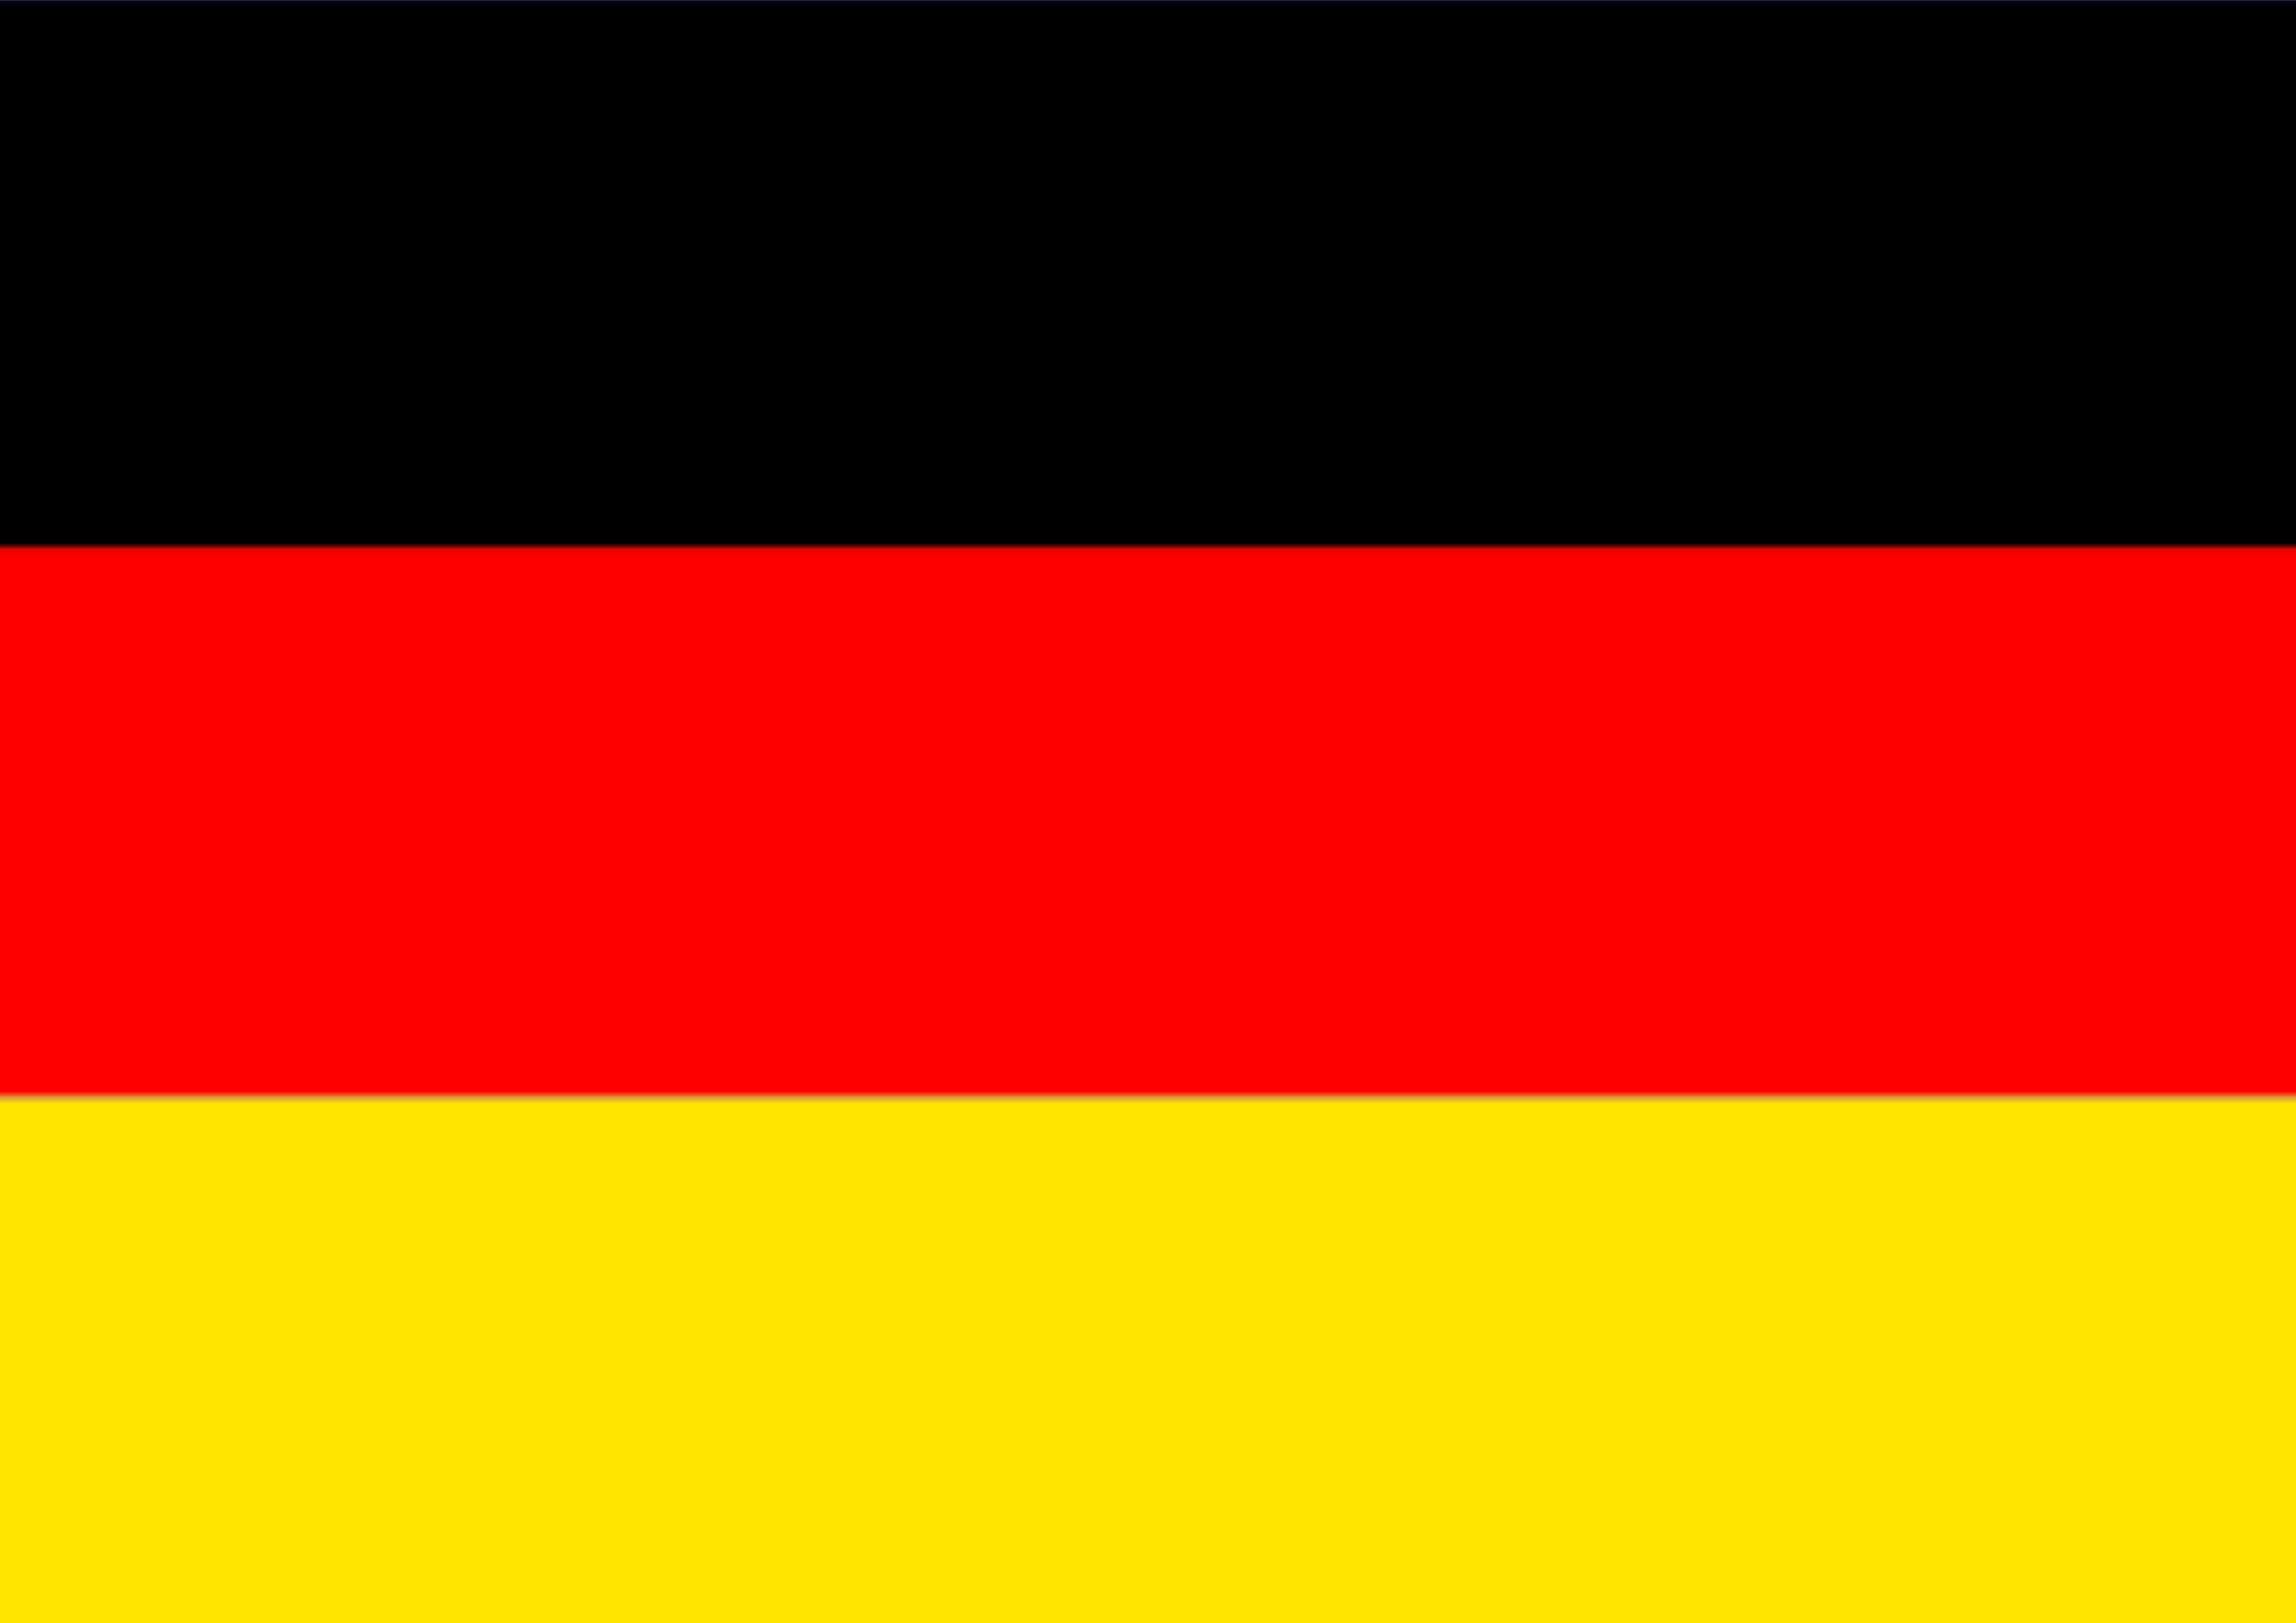 Flag of Germany by Joesph